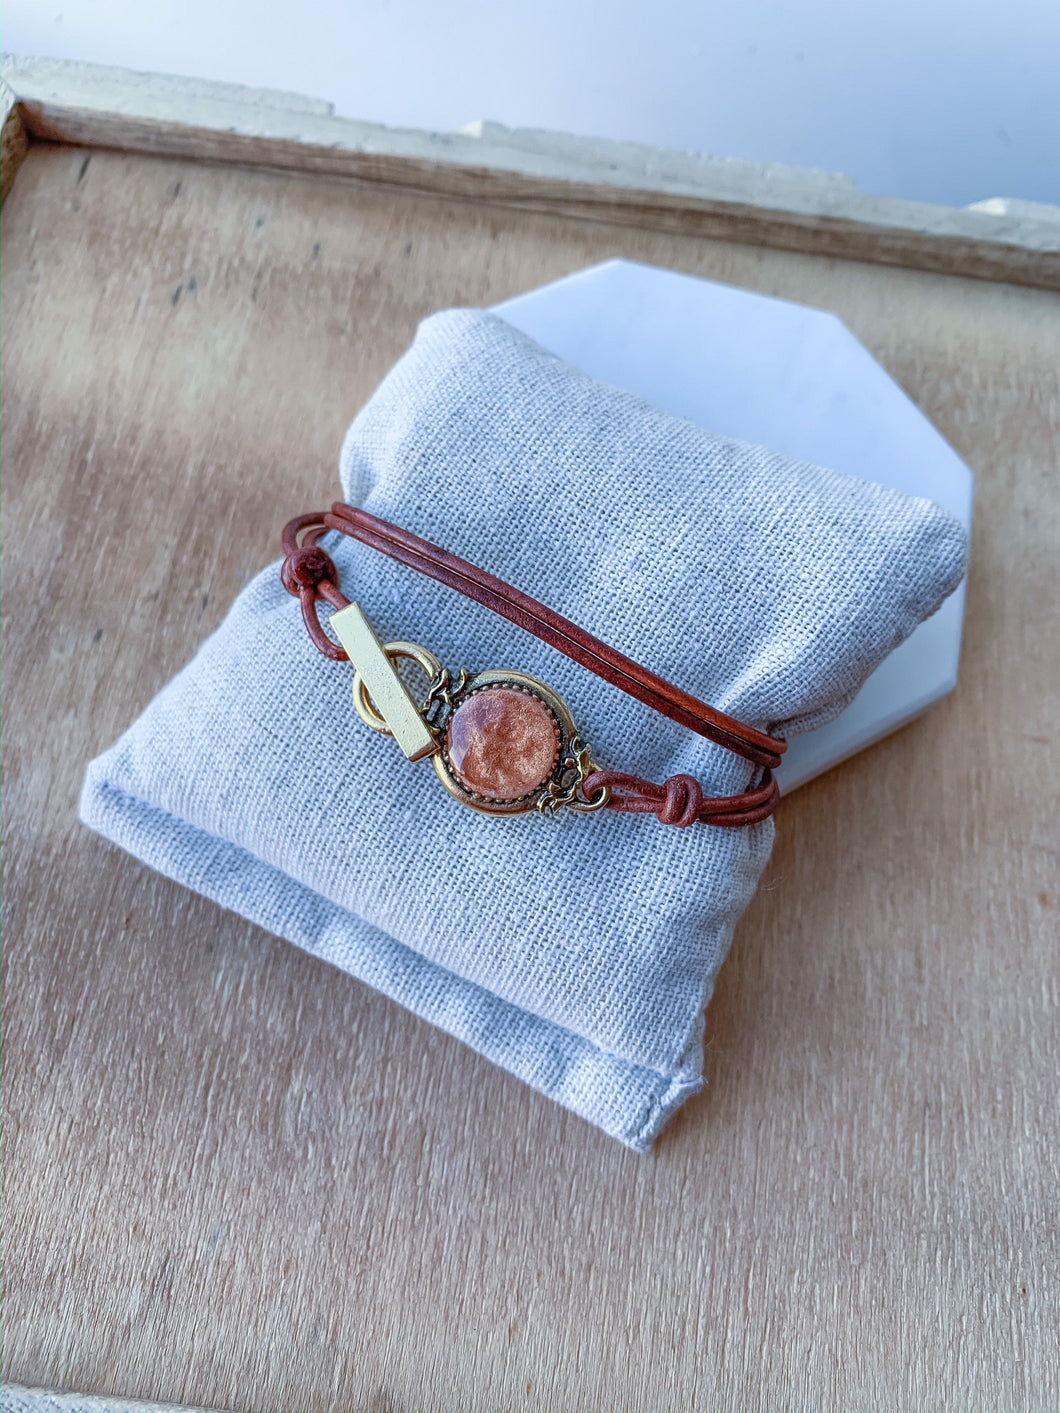 Leather and Gold Charm Wrap Bracelet